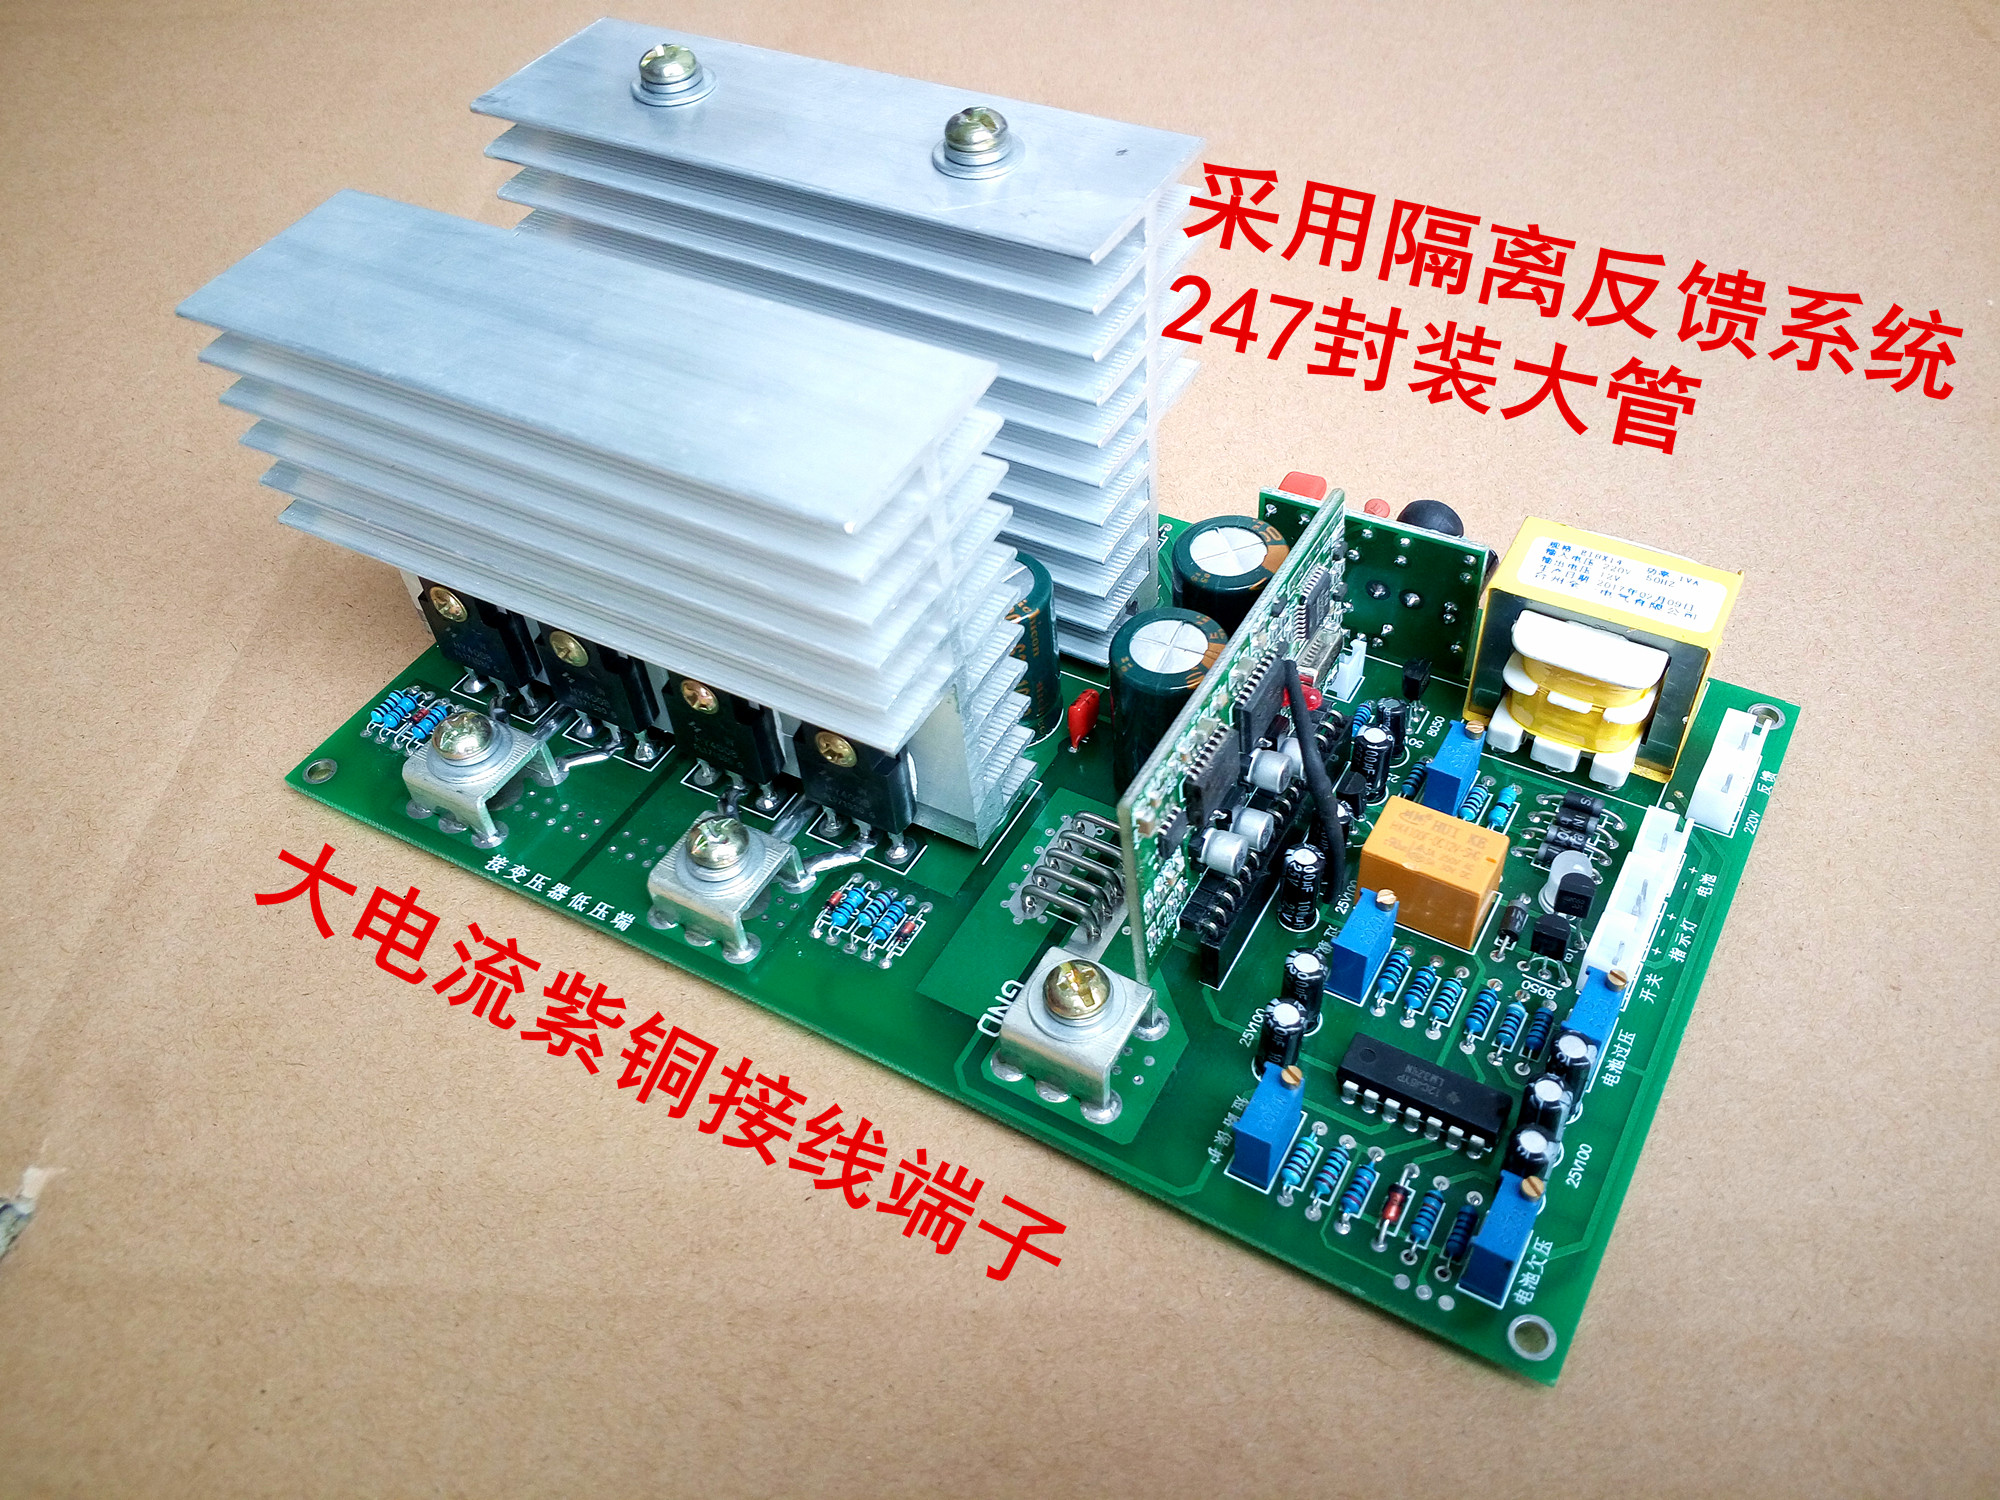 24v 36v 48v 60v 3kva 4kva 5kva 6kva Frequency Pure Sine Wave Circuit Board Low Price Induction Cookerb3 View The Latest High Power Inverter Main 12v24v36v48v60v